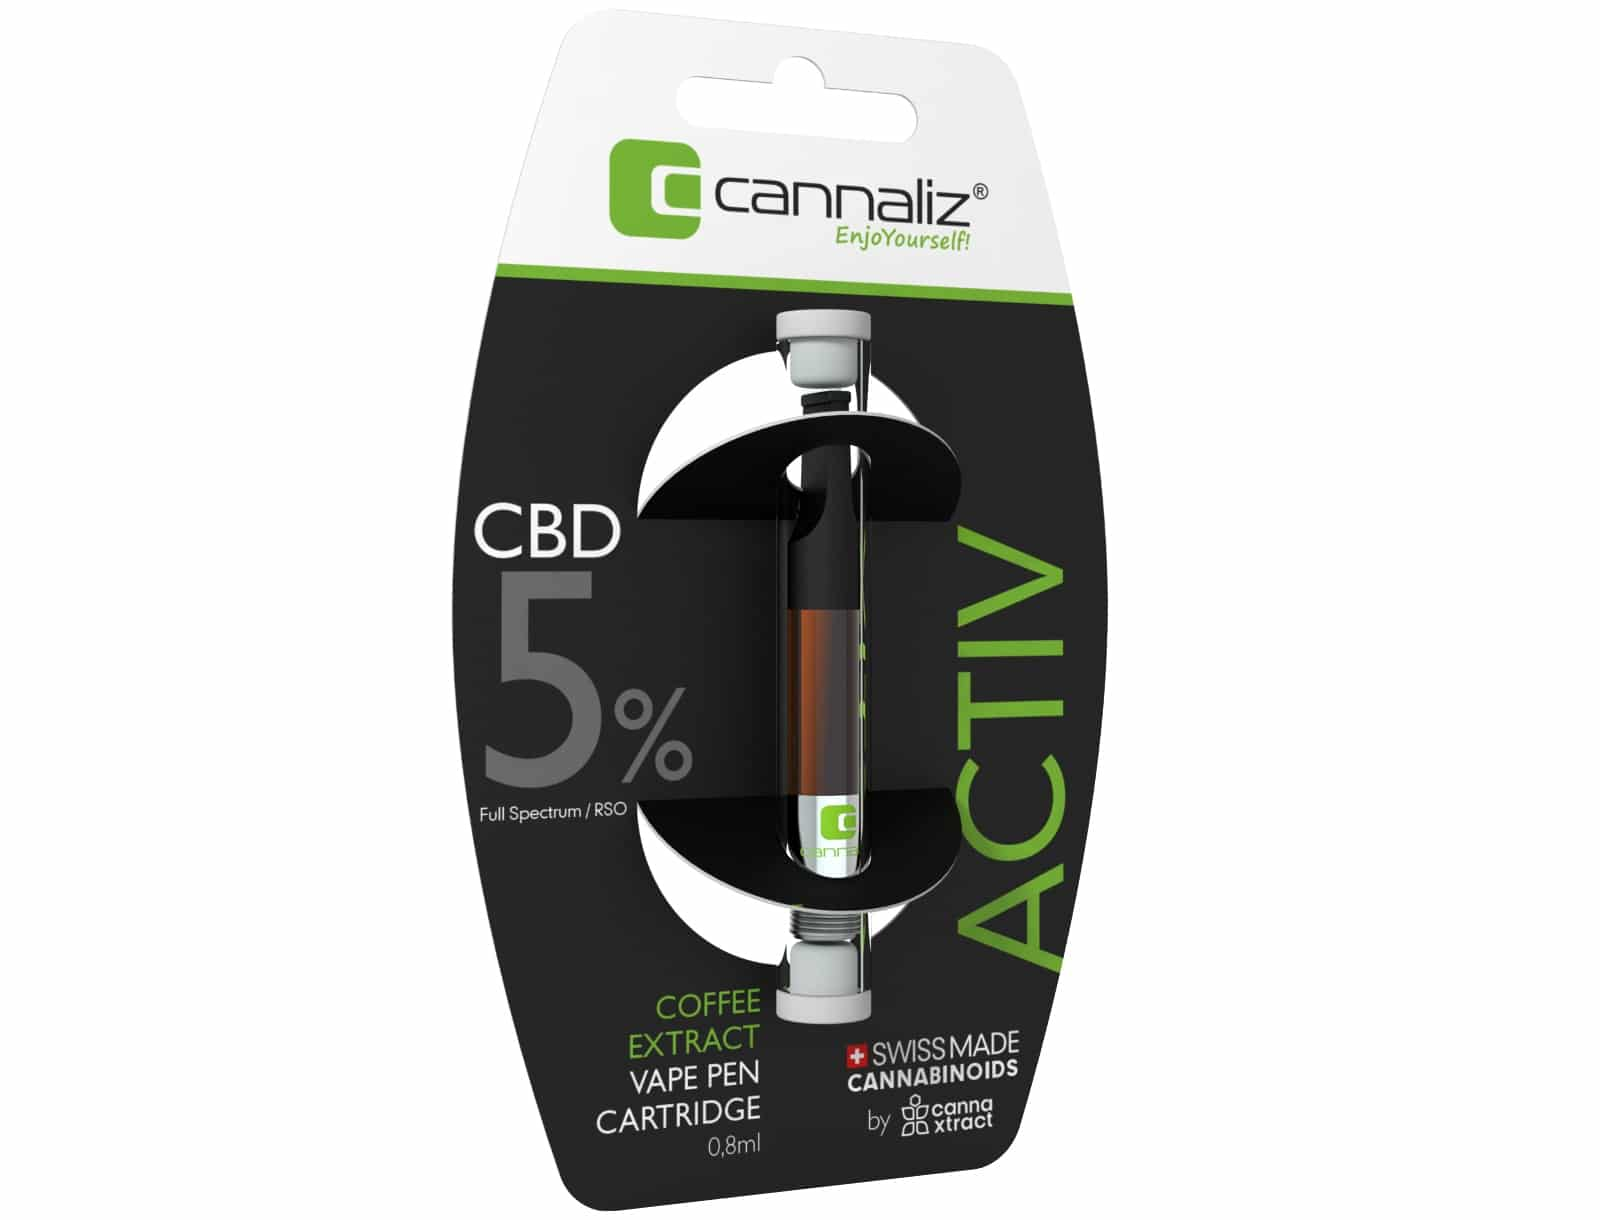 Cannaliz_E-Cigarette_Vape-Pen_ACTIV-5_front_movie_2017